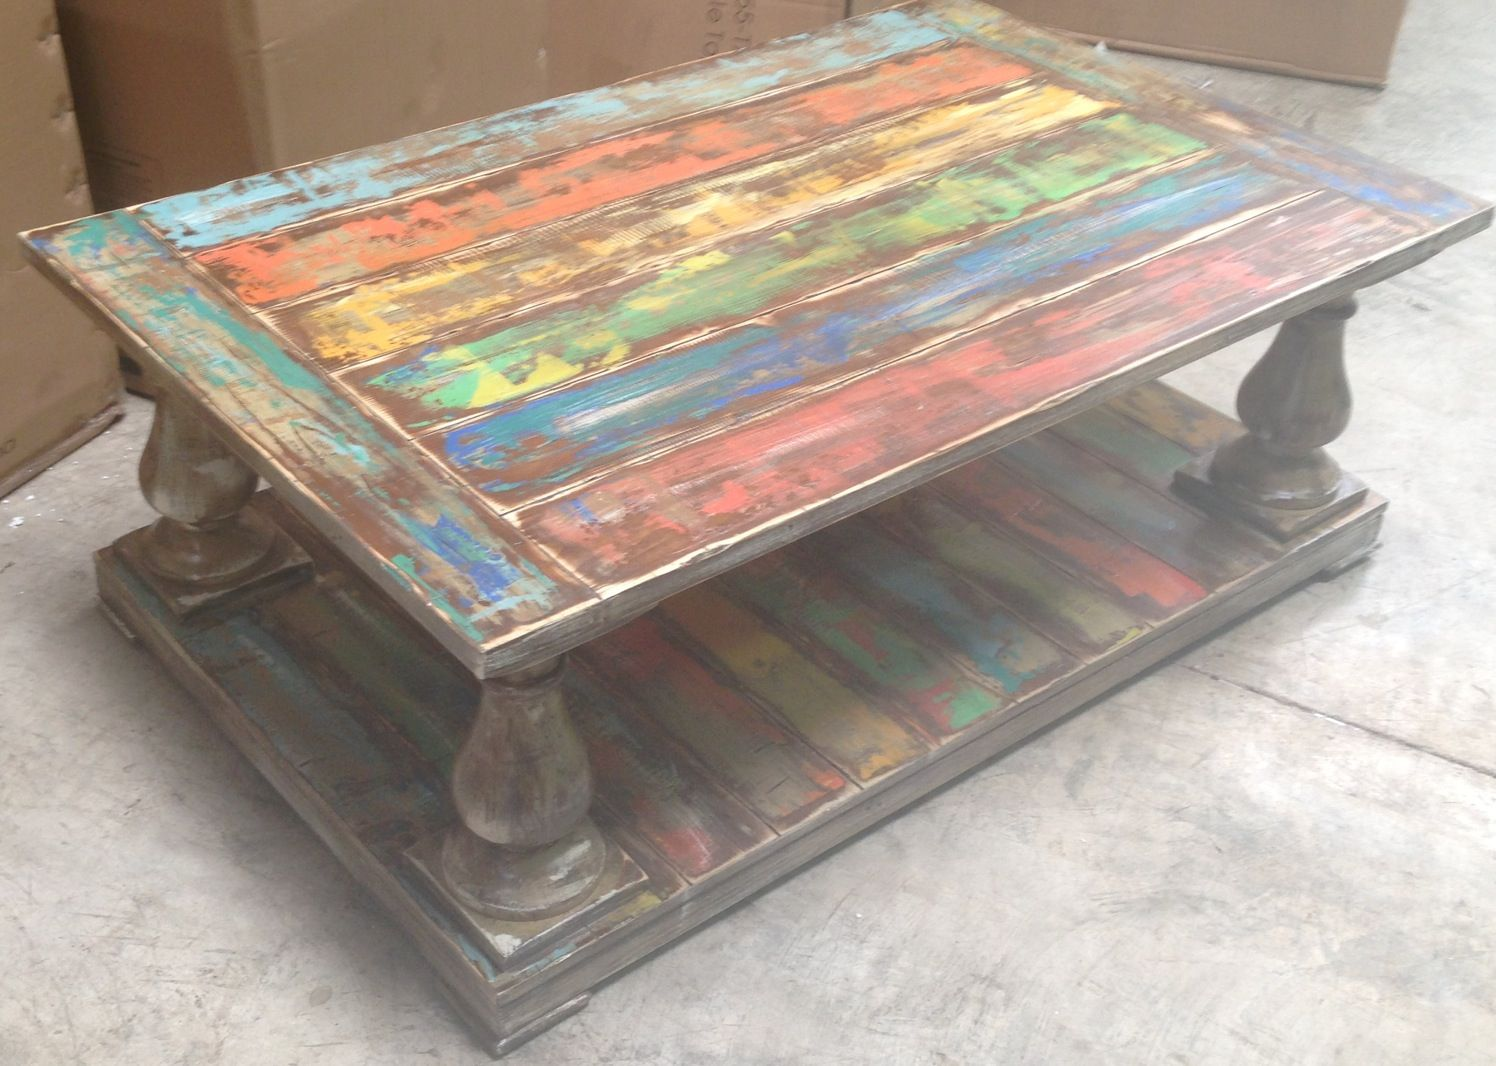 Painted reclaimed wood coffee table brittney english designs hand painted coffee table best painted coffee tables to place on your rooms inspired kitchen designs geotapseo Image collections